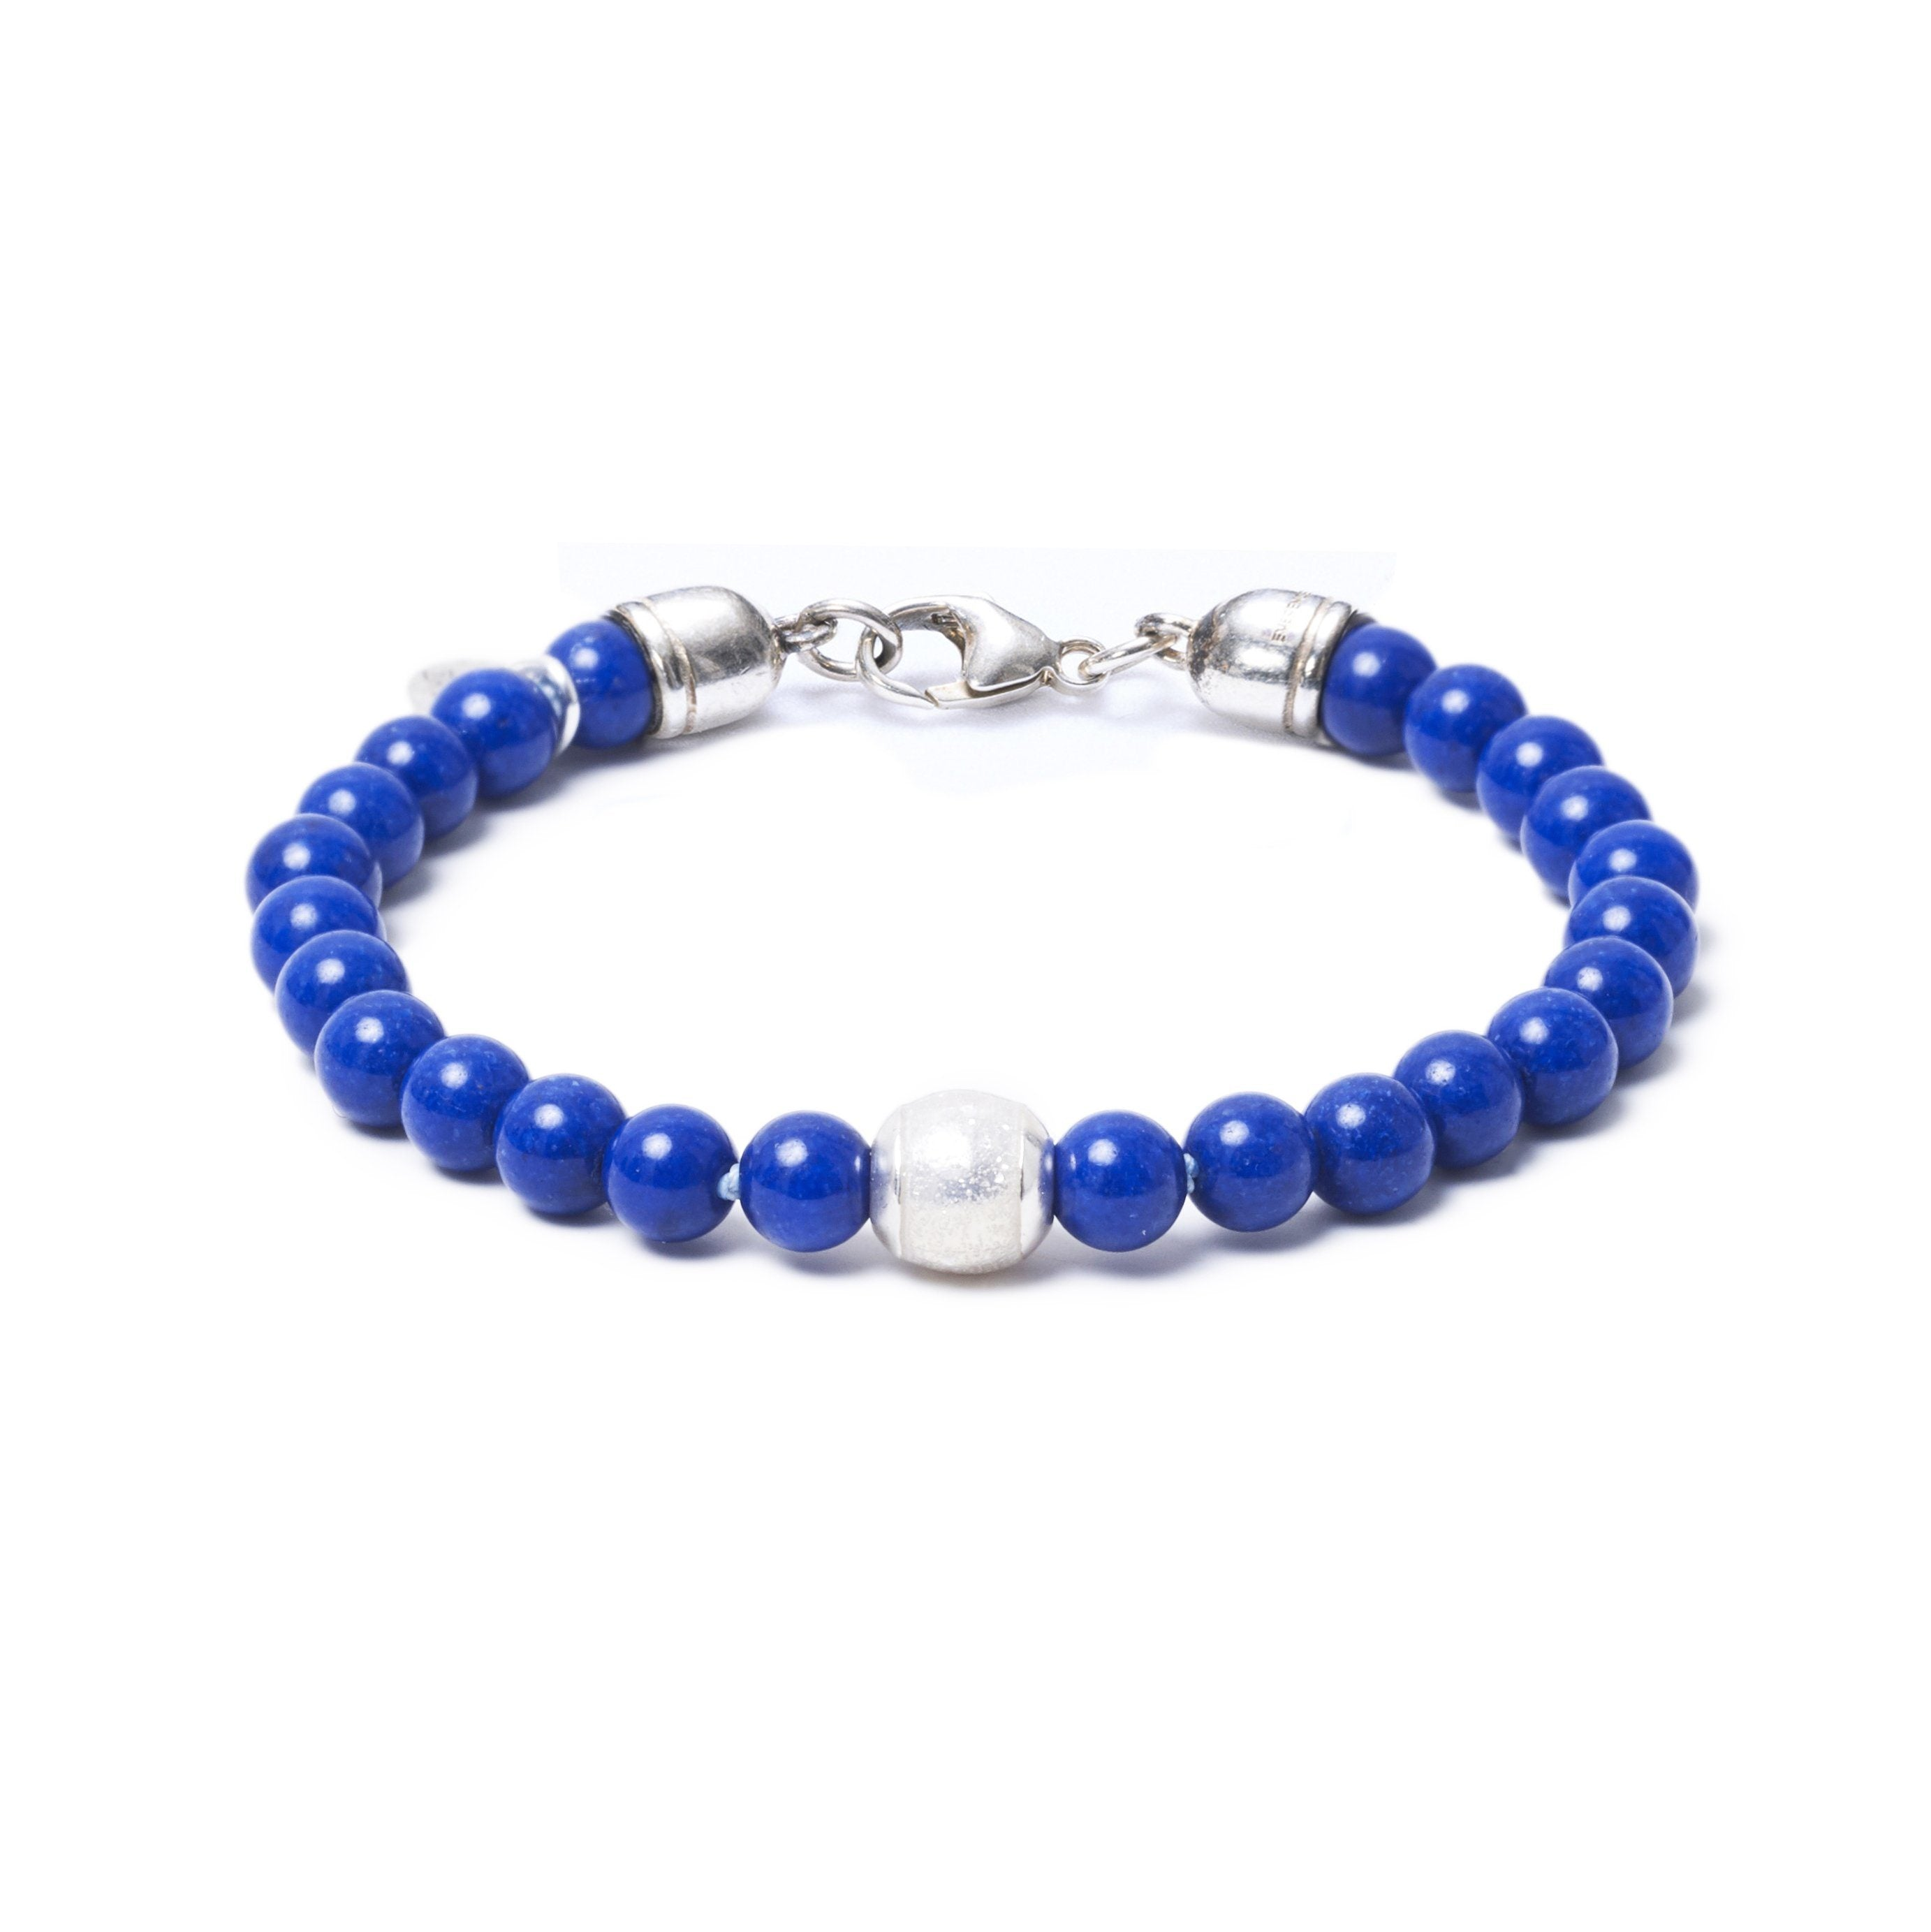 Lapis Lazuli, One Everence Bead everence.life Clear Lobster Claw 7